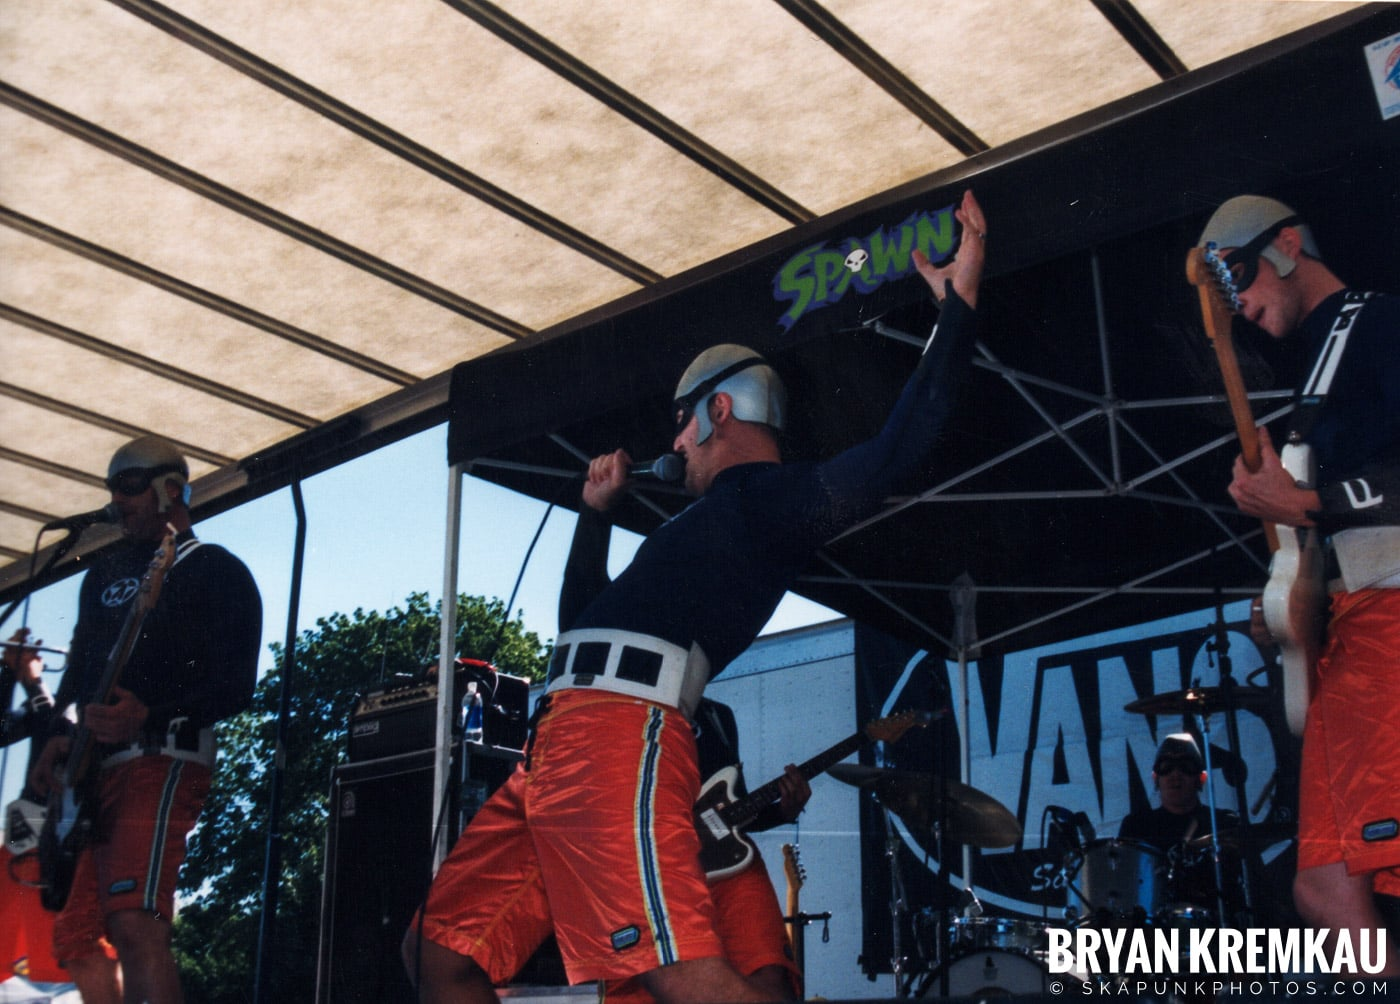 The Aquabats @ Vans Warped Tour, Randall's Island, NYC - 8.1.98 (11)